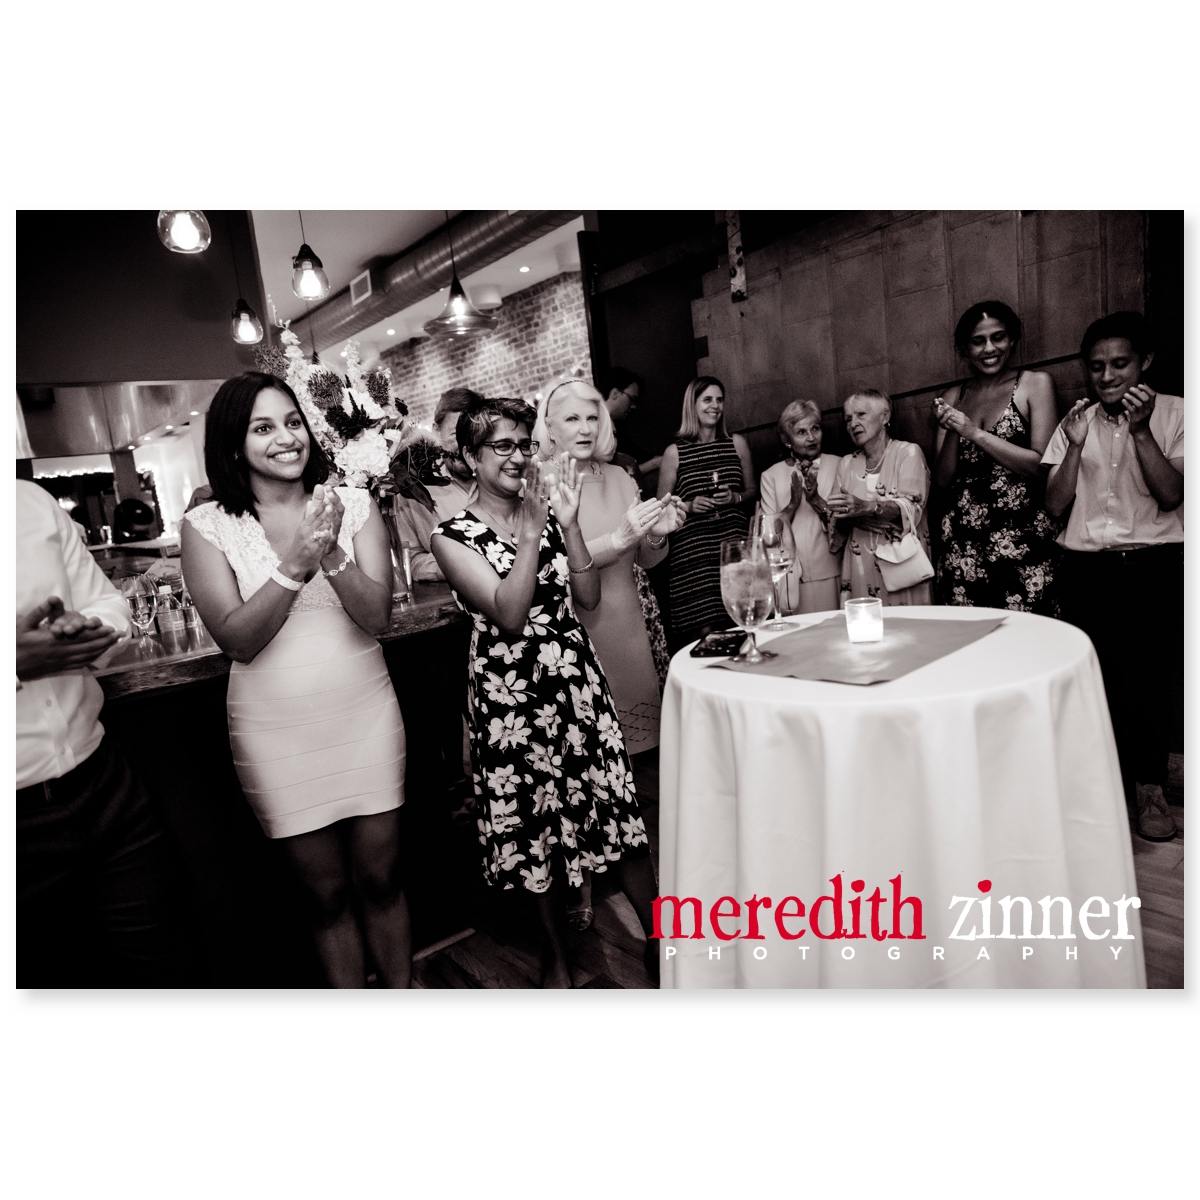 Meredith_Zinner_Photography_StilesCelebration_0306